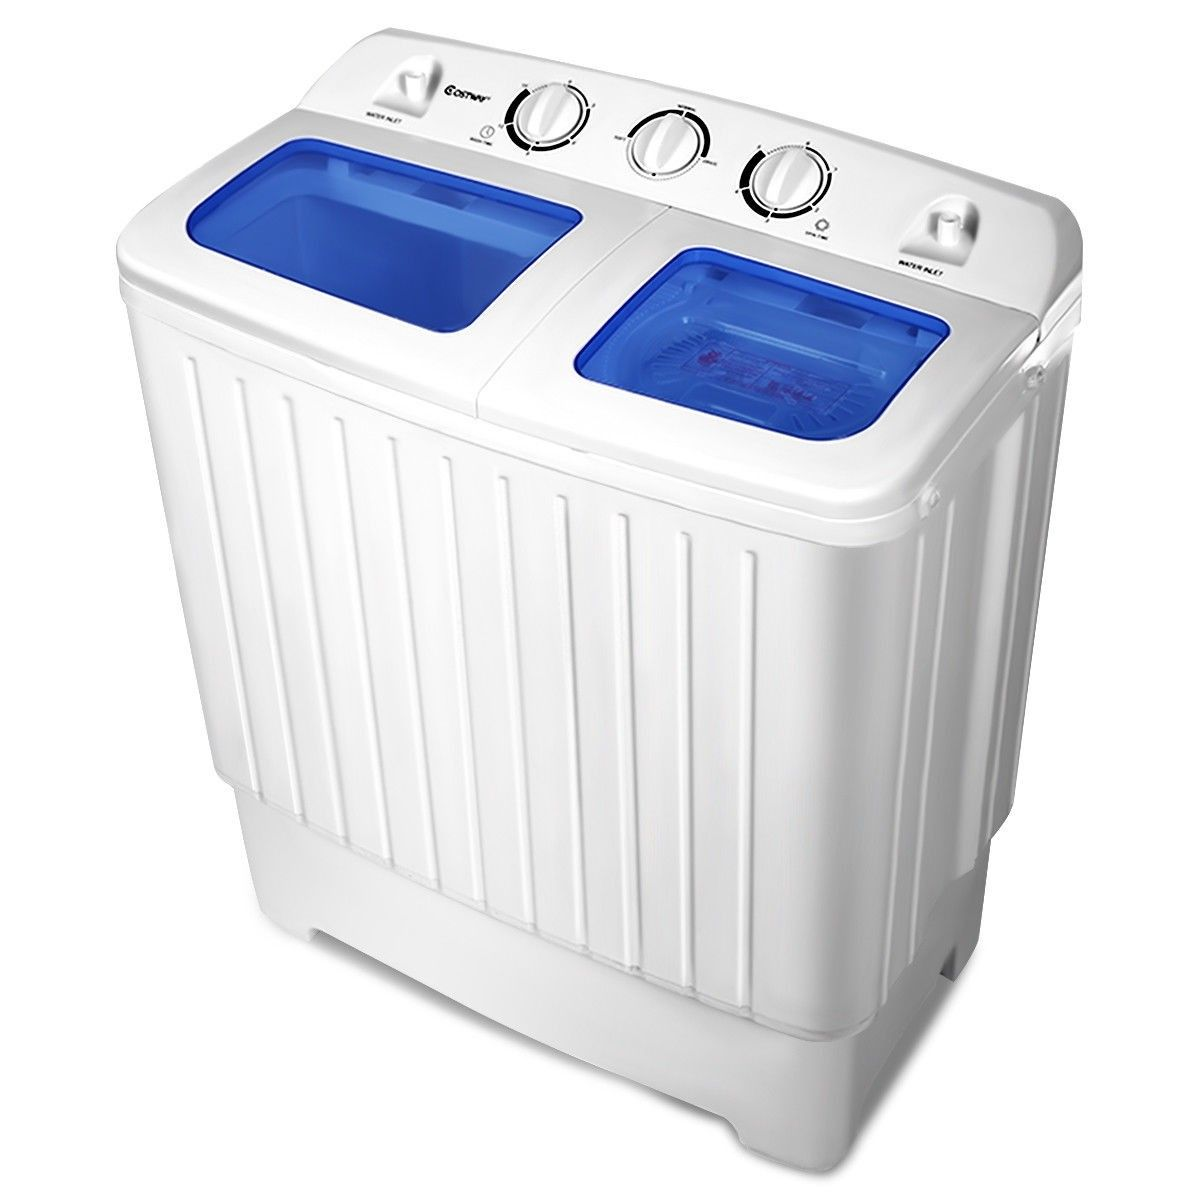 Portable Twin Tub Mini Washing Machine Washer Spinner Color White